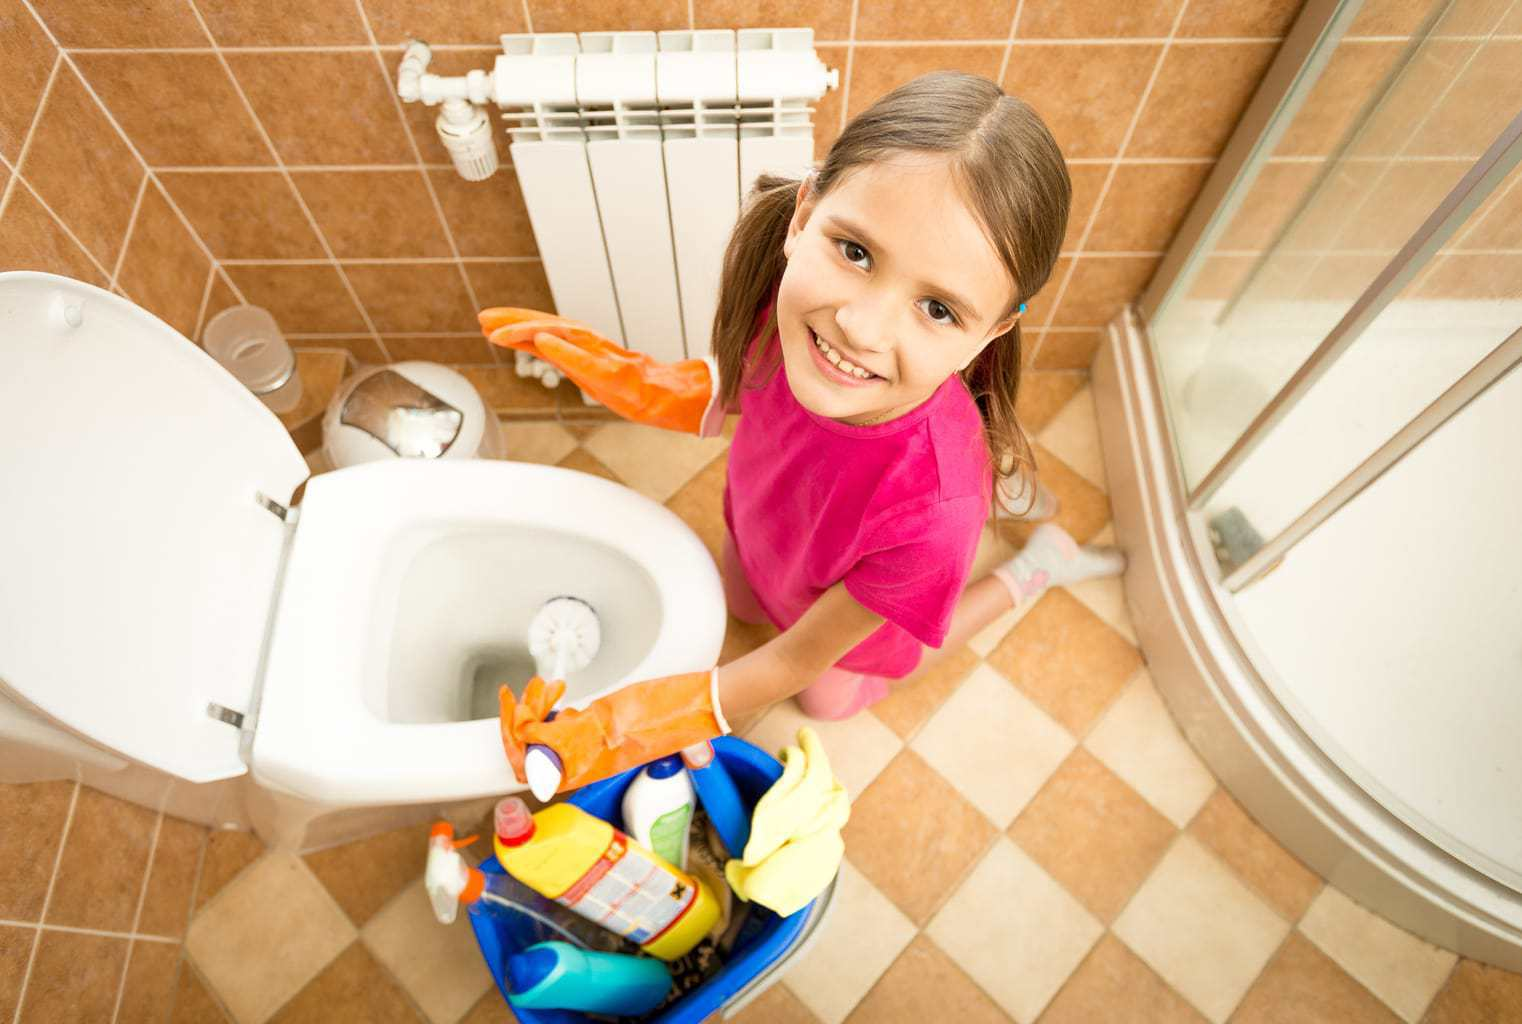 Children Cleaning Toilets